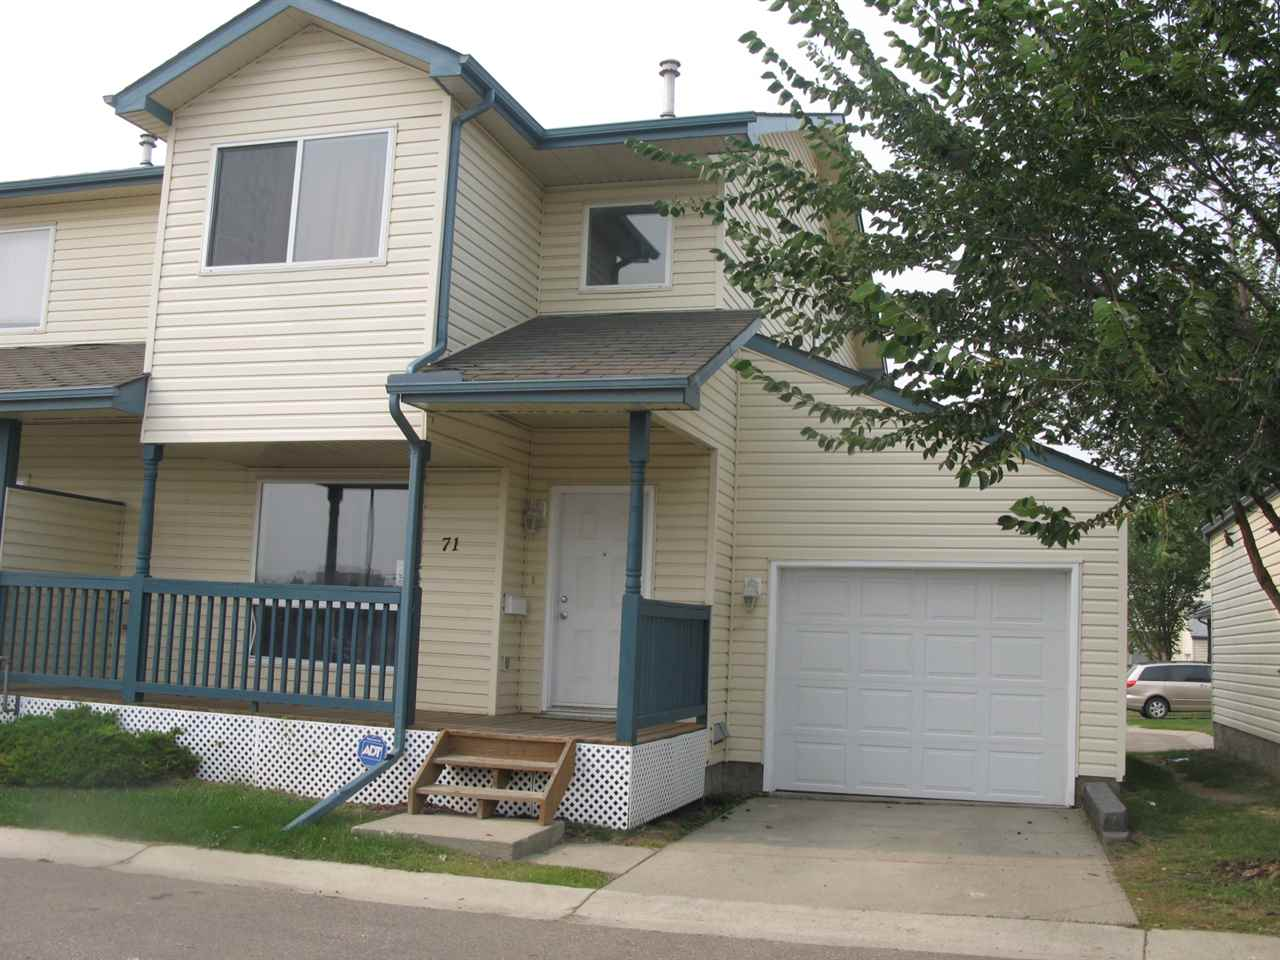 MLS® listing #E4145512 for sale located at 71 10909 106 Street